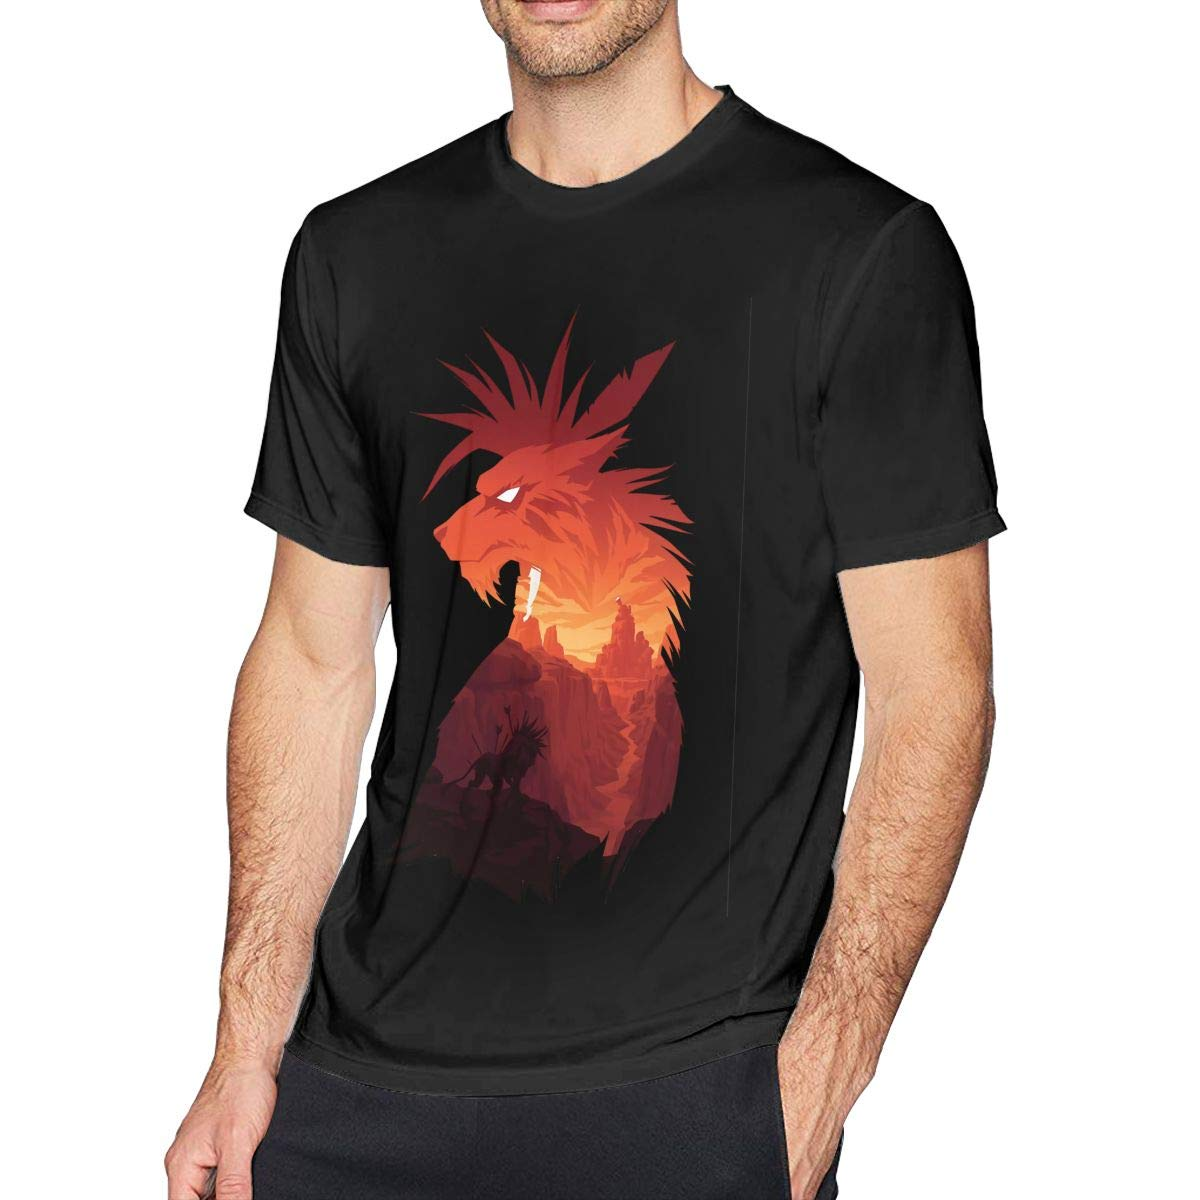 NeedLove Mens Classic The Canyons Guardian T-Shirts Black